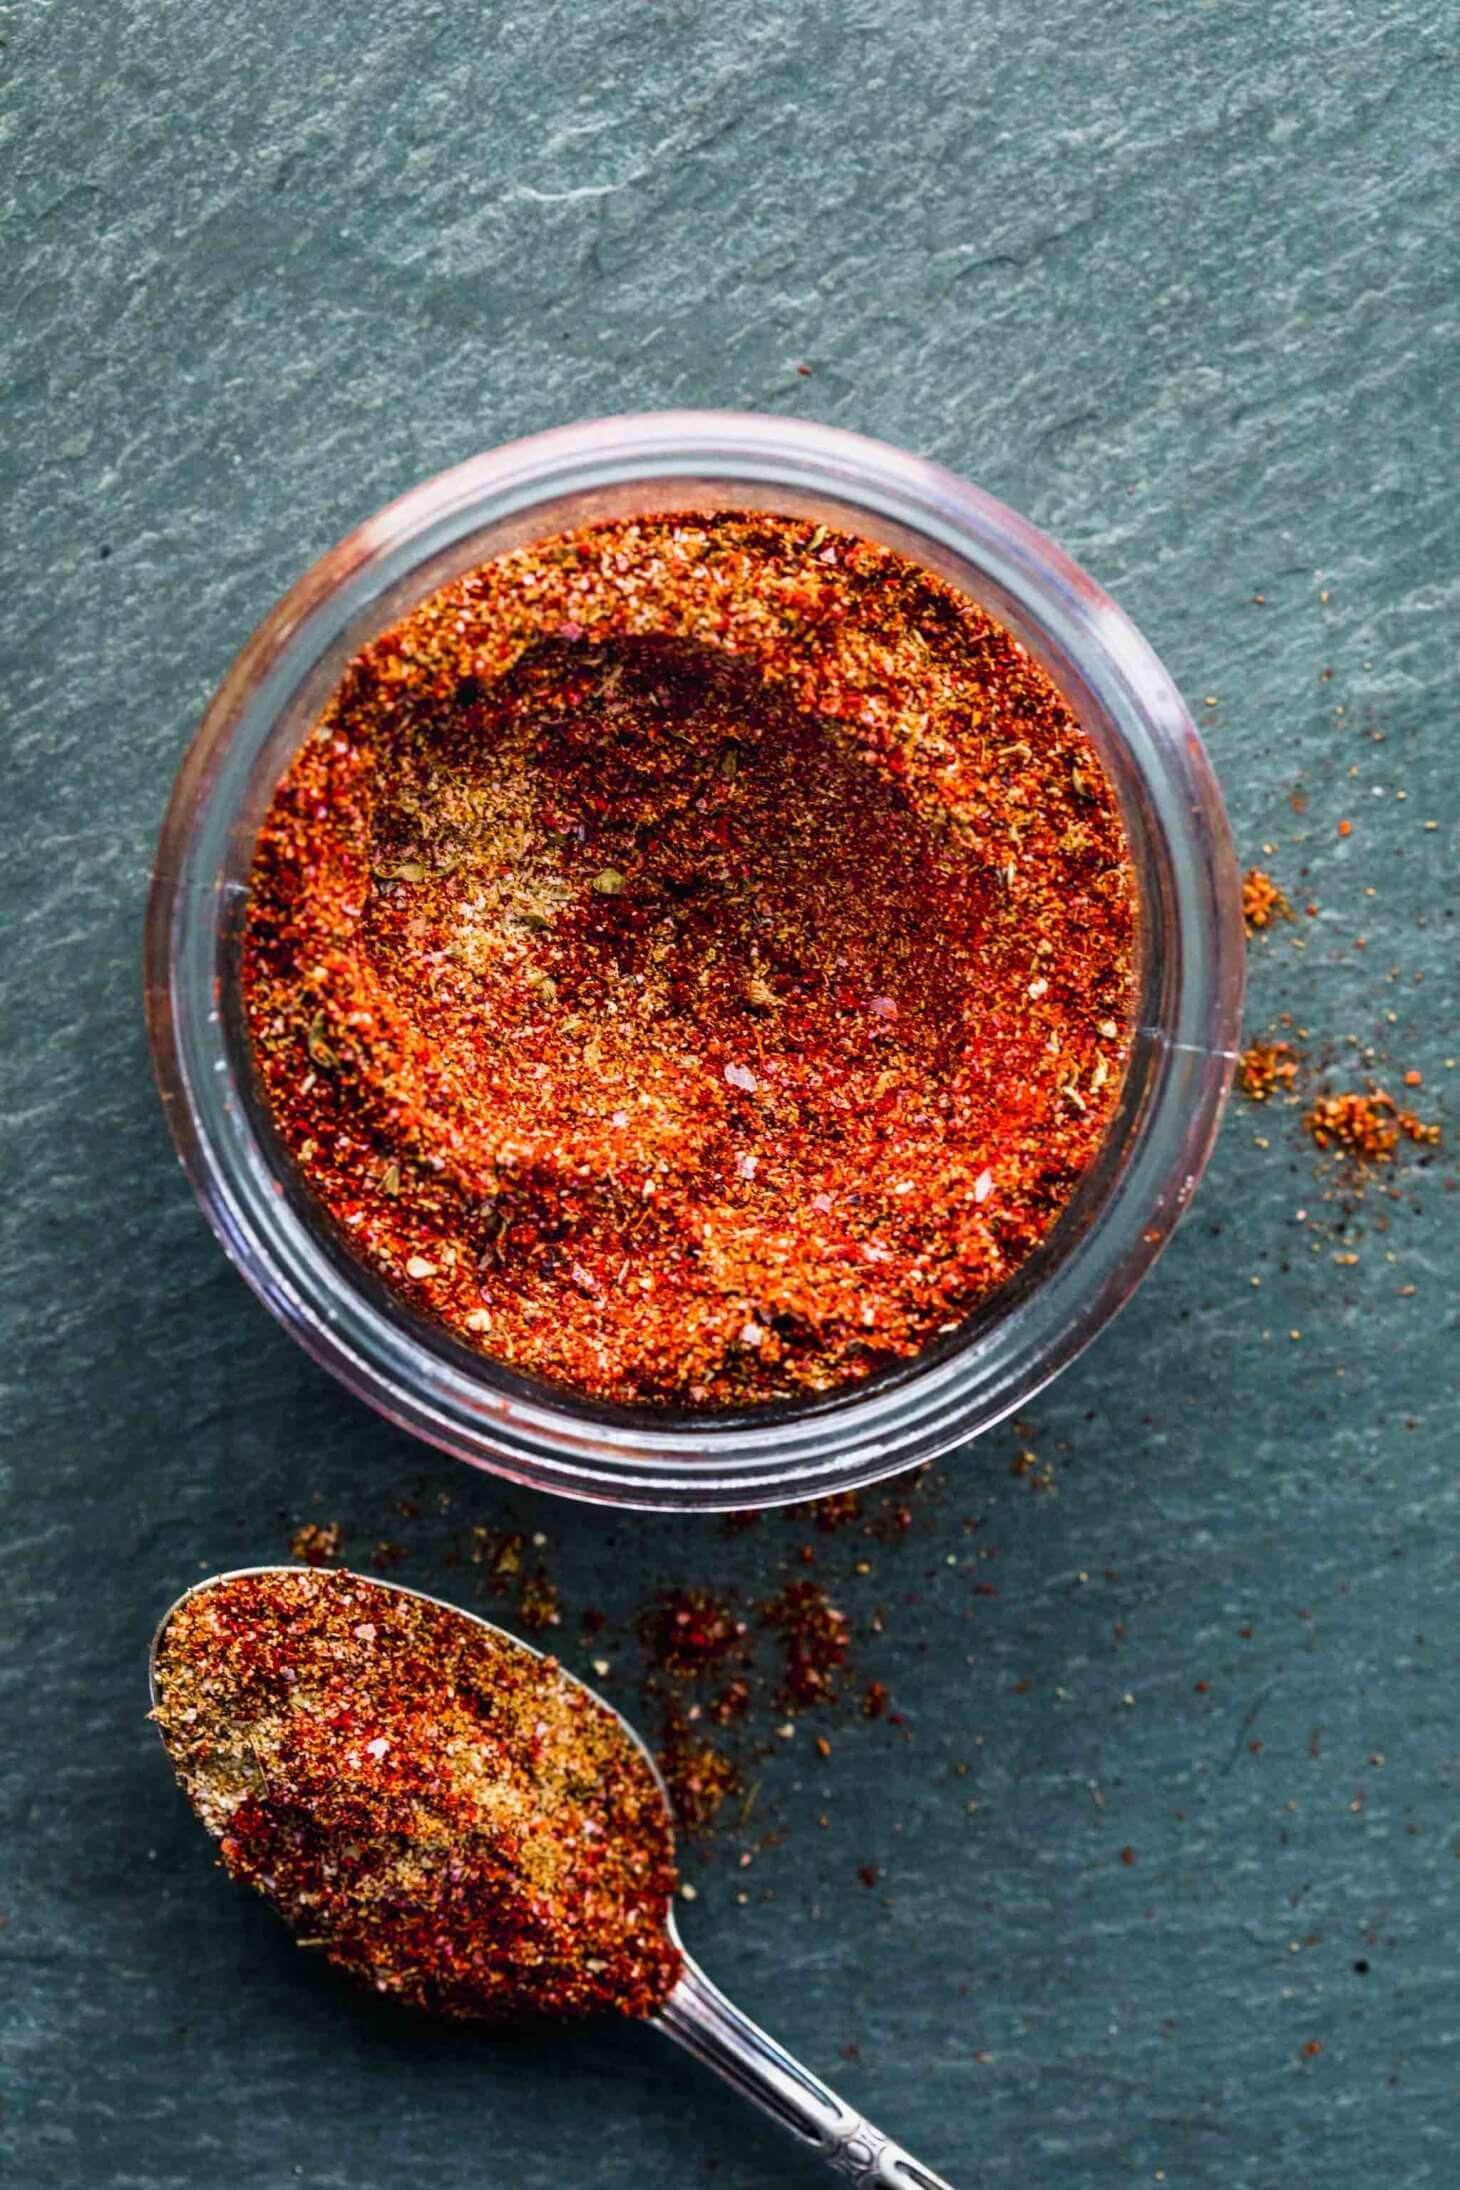 OVERHEAD SHOT OF TACO SEASONING IN GLASS CONTAINER WITH SPOON NEXT TO IT